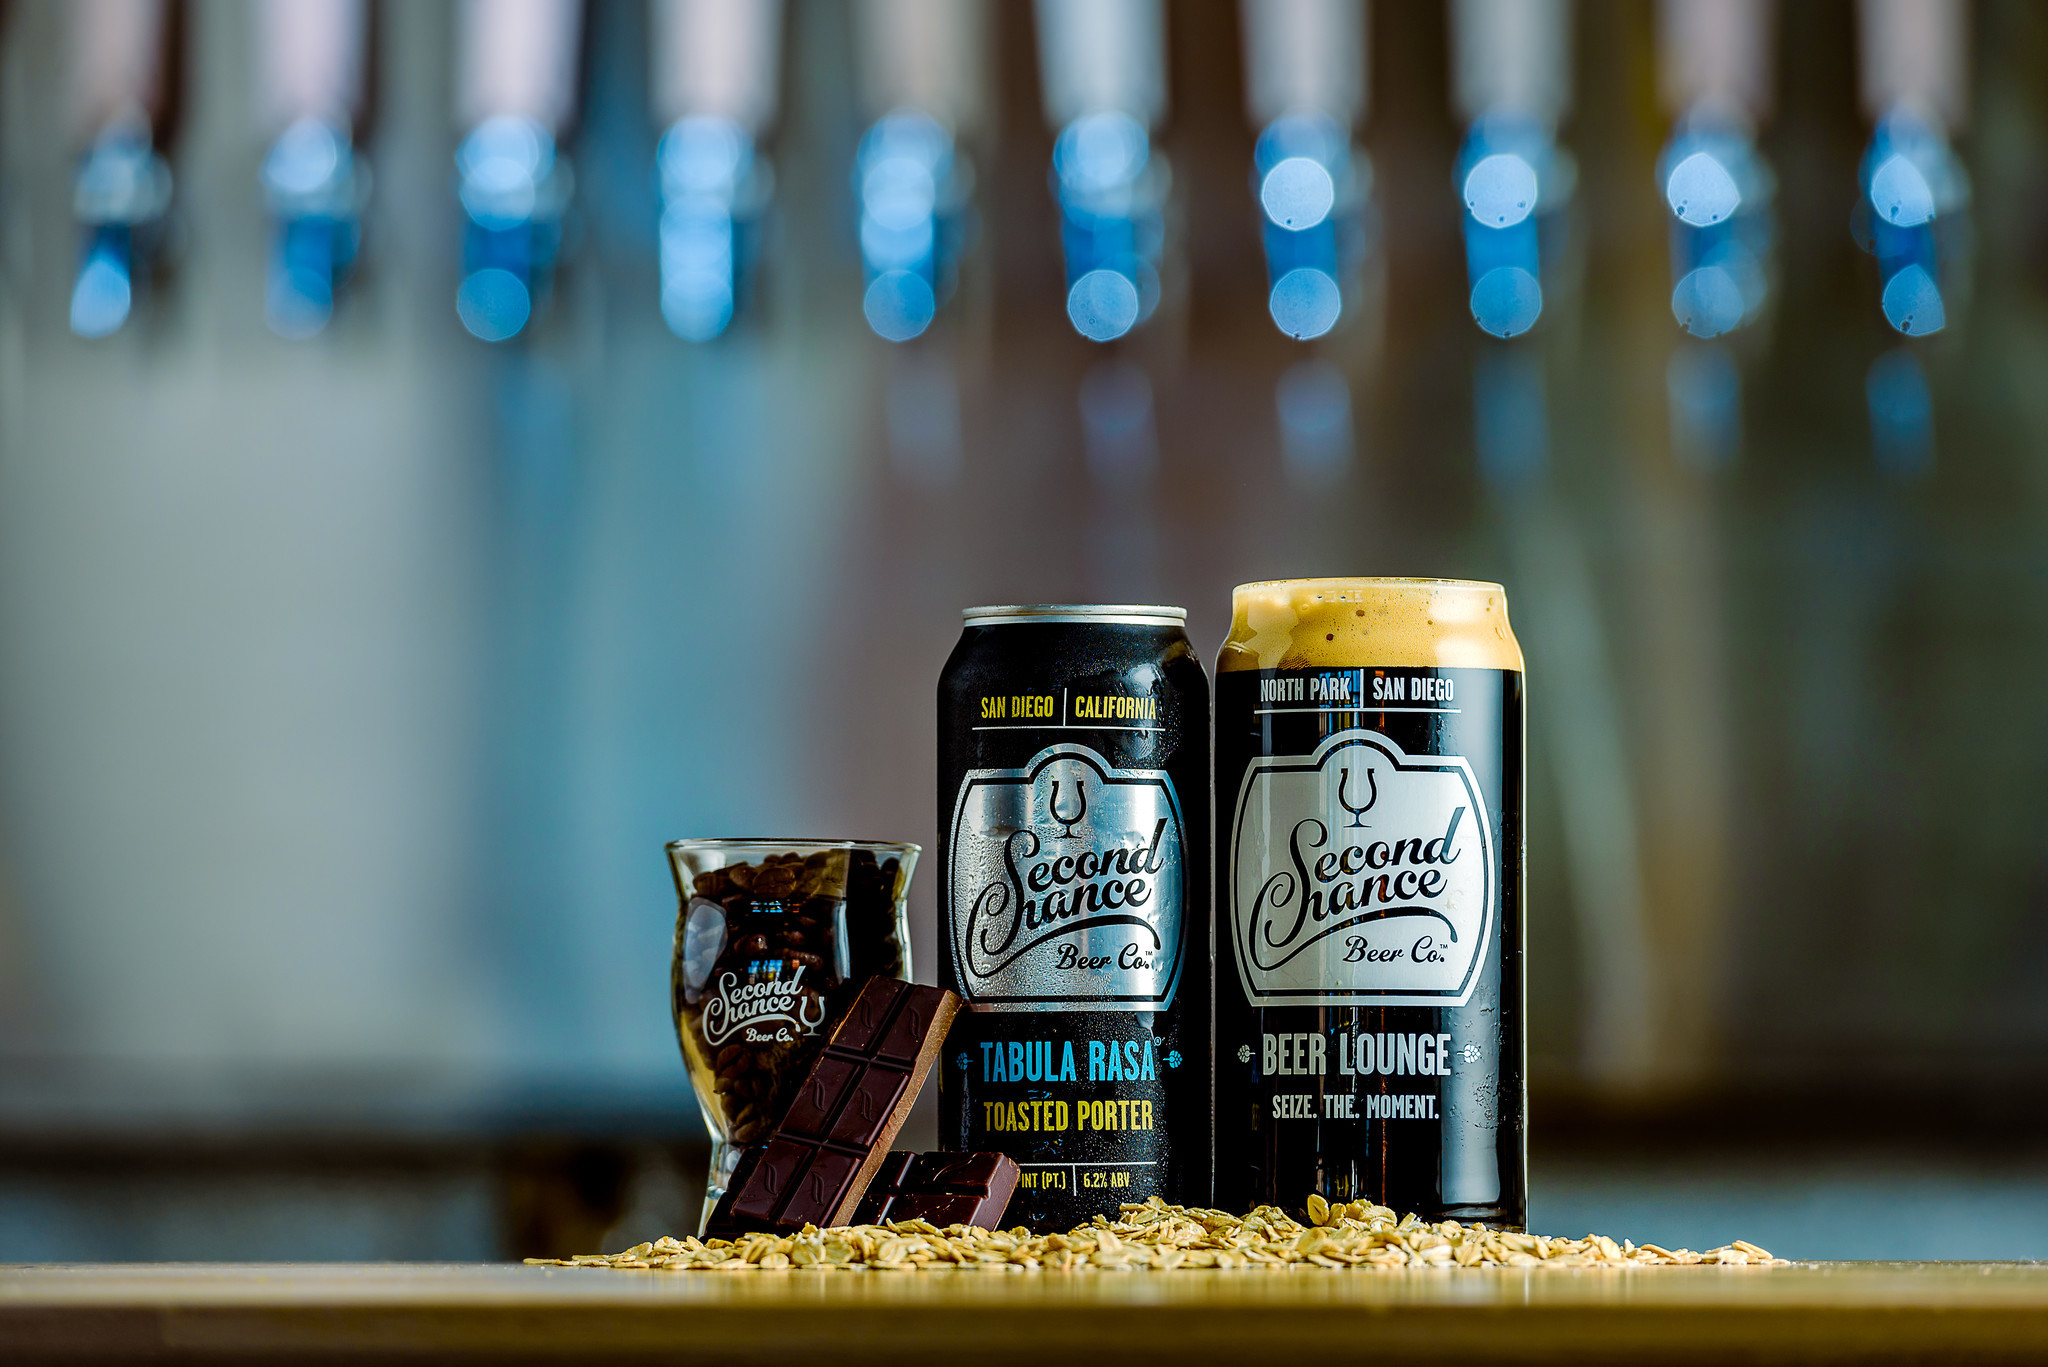 Beer of the week: Tabula Rasa from Second Chance Beer Co.